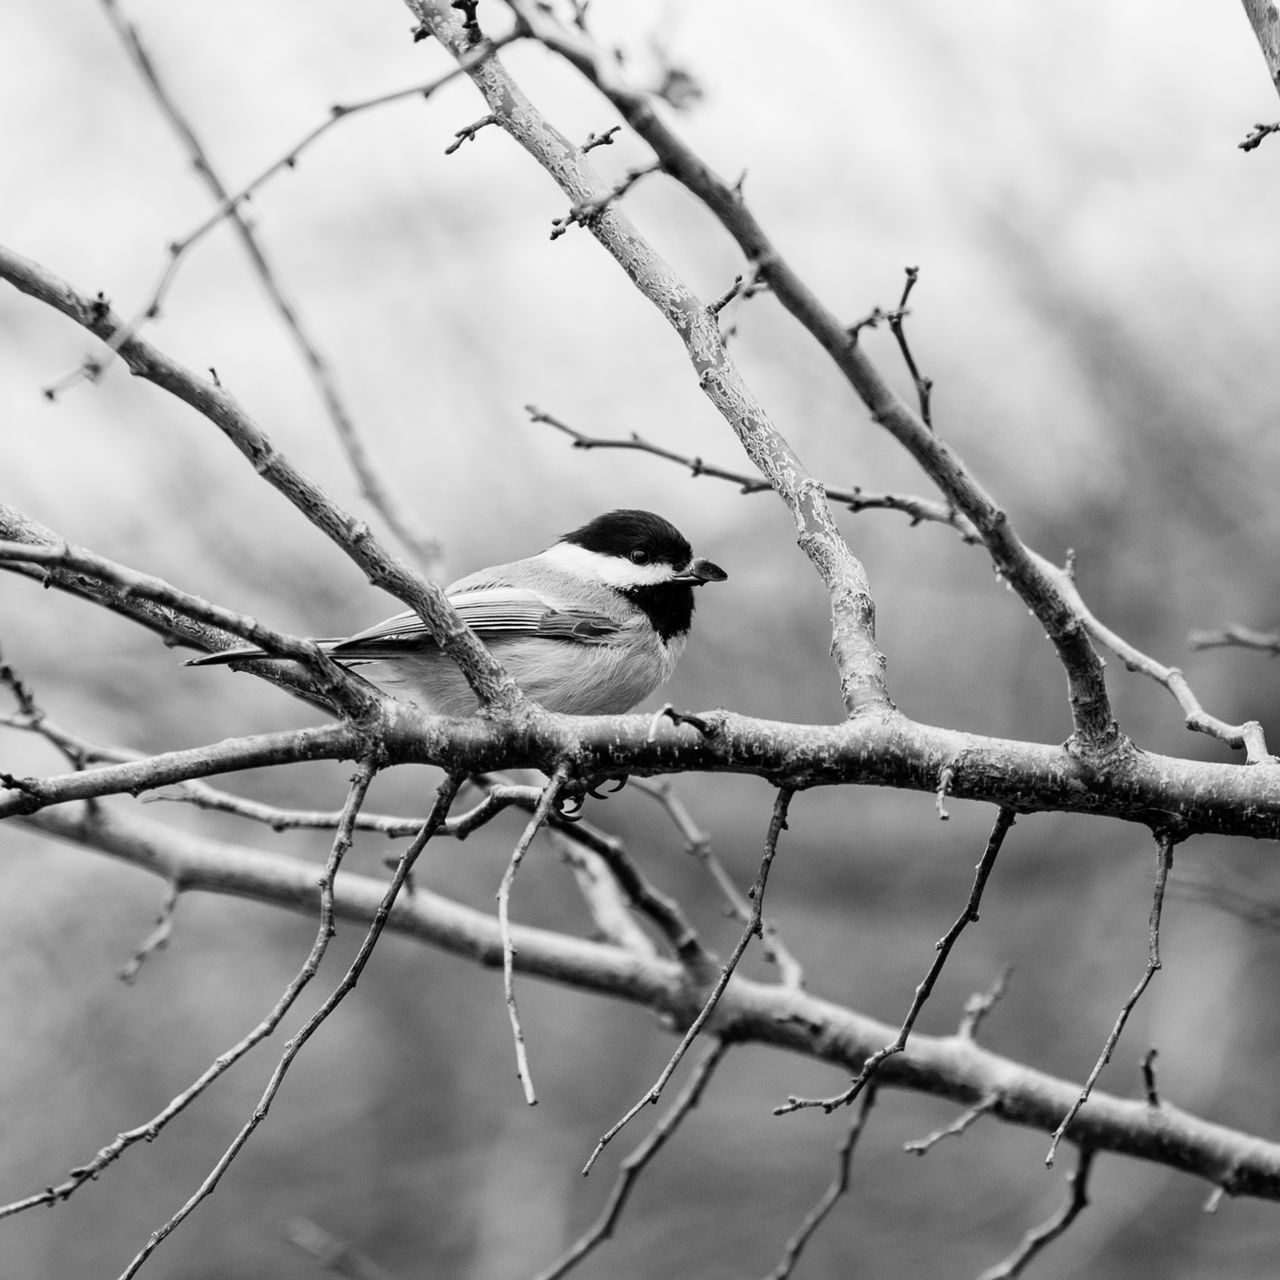 ©Amy Boyle Photography Animal Themes Animal Wildlife Animals In The Wild Bare Tree Beauty In Nature Bird Black And White Photography Branch Chickadee Day Nature Nature Photography No People One Animal Outdoors Perching Sky Tree